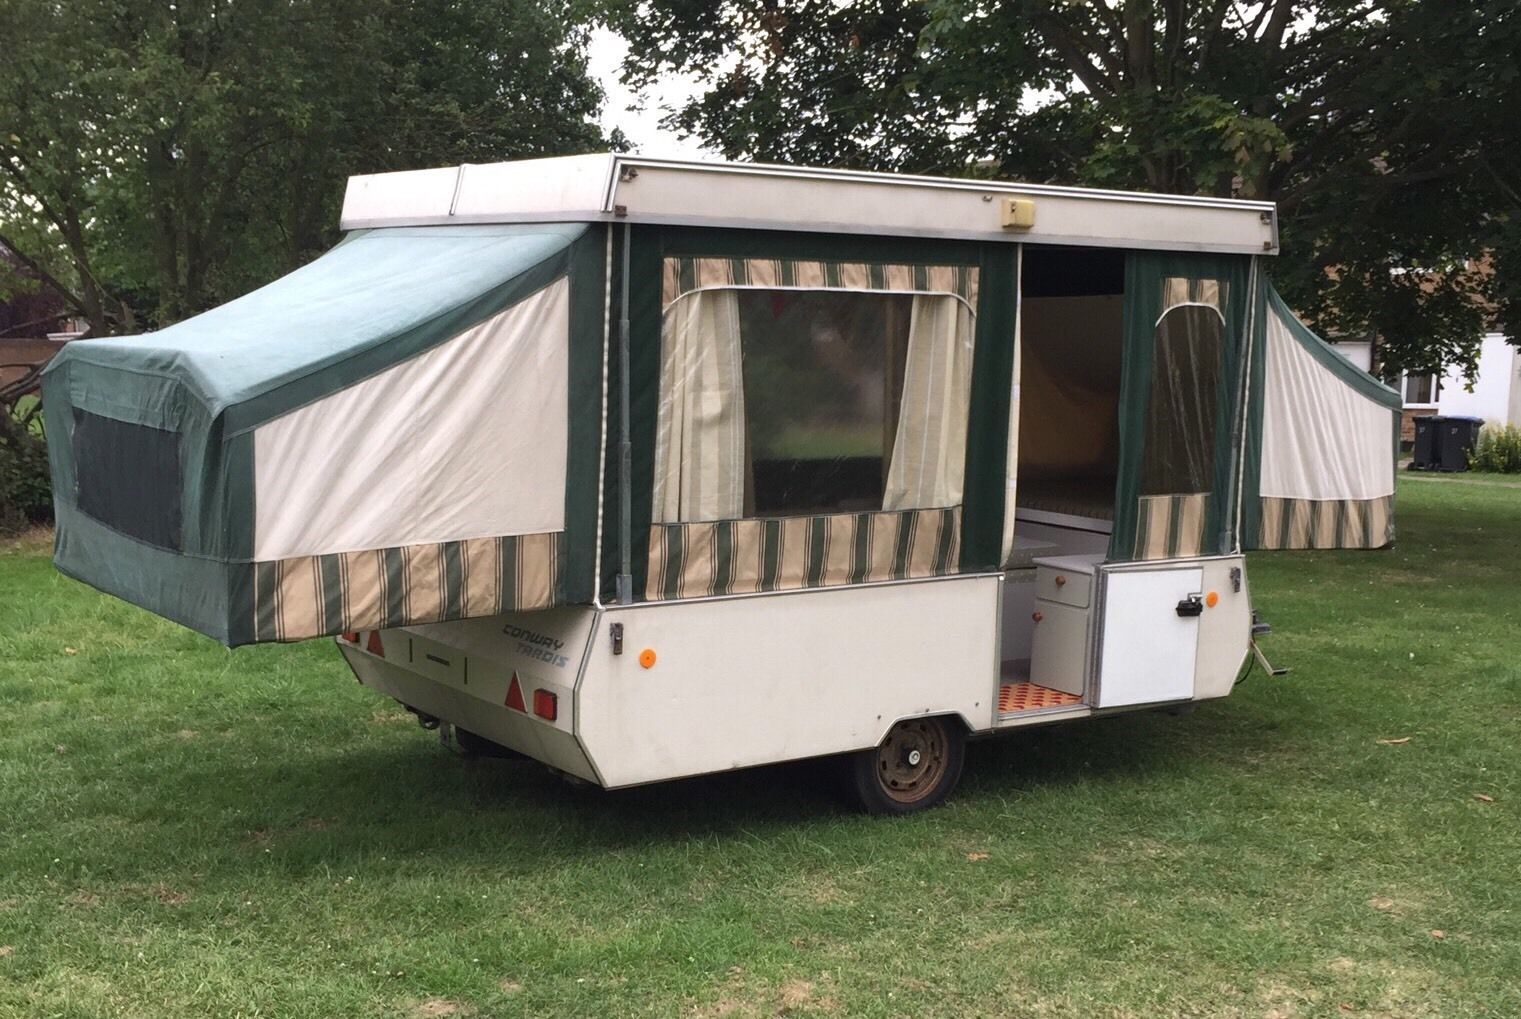 Shabby Chic Conway Tardis Folding C&er Trailer Tent Refurbished Gl&ing inu2026 & Shabby Chic Conway Tardis Folding Camper Trailer Tent Refurbished ...